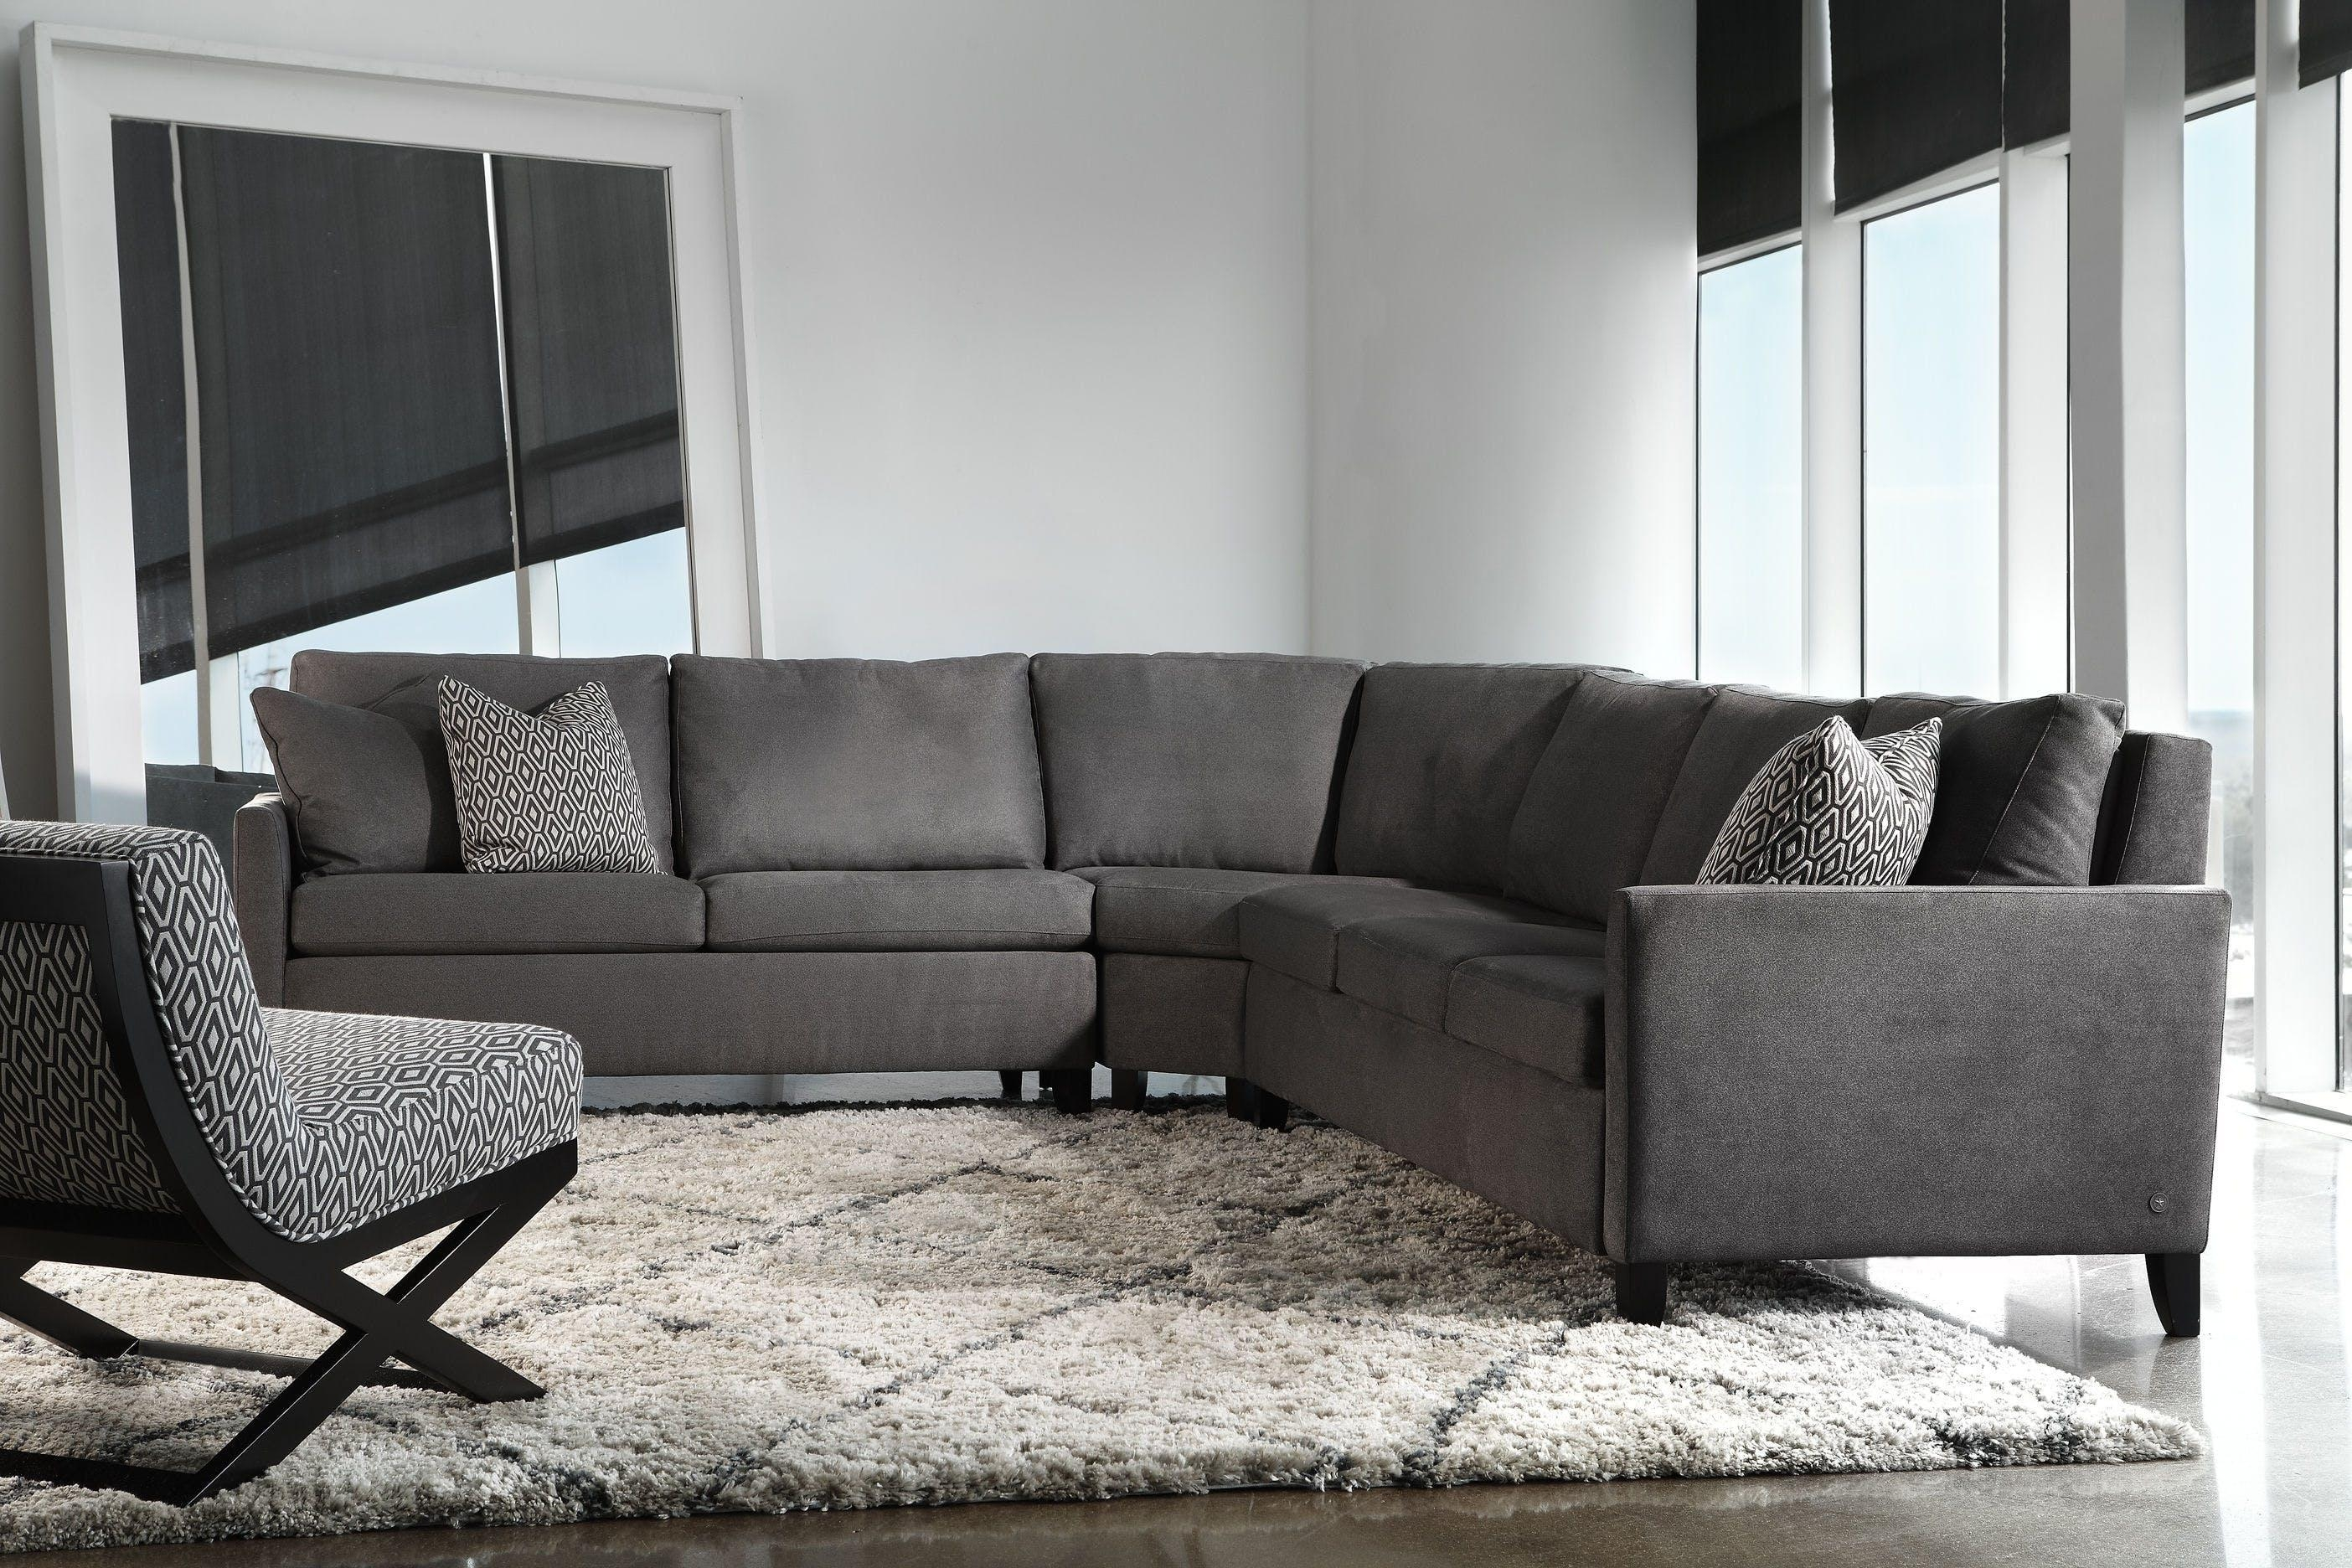 leather theater berkline marvelous home couch berkne sofa sofas seating costco furniture